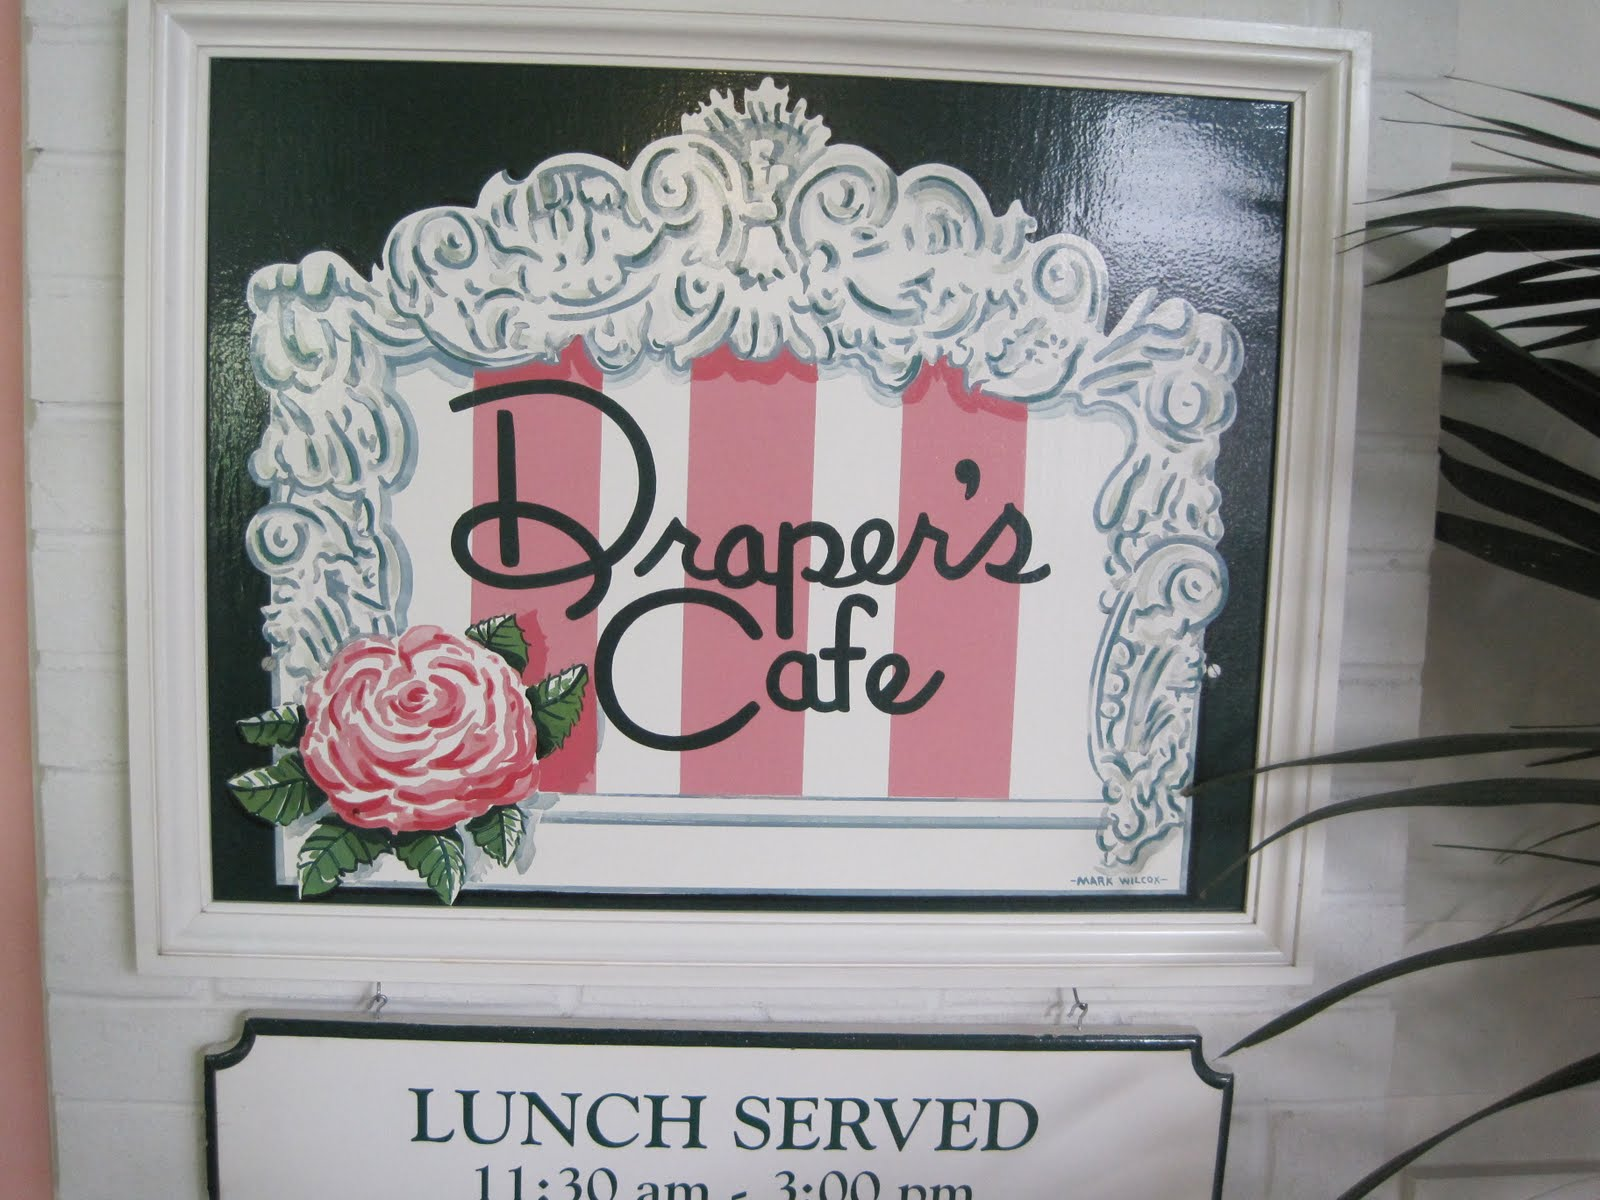 I loved Draper's Cafe.